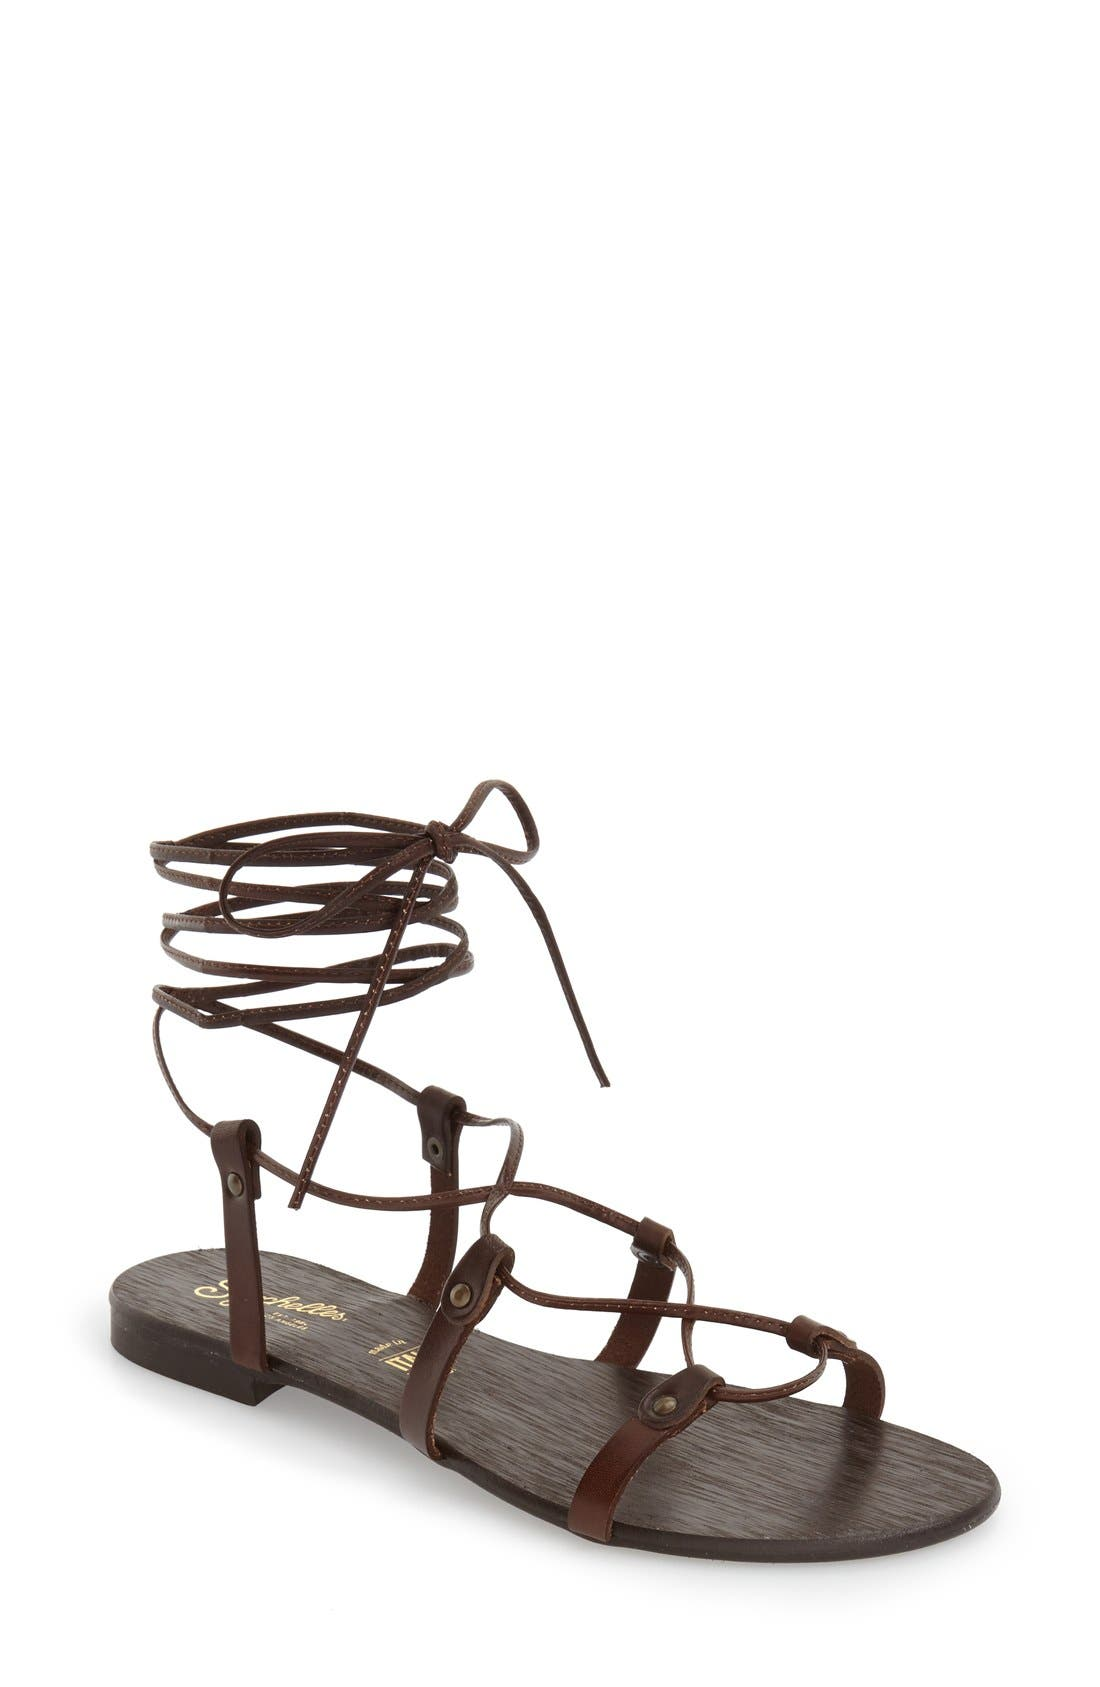 Alternate Image 1 Selected - Seychelles 'Gawk' Lace-Up Sandal (Women)